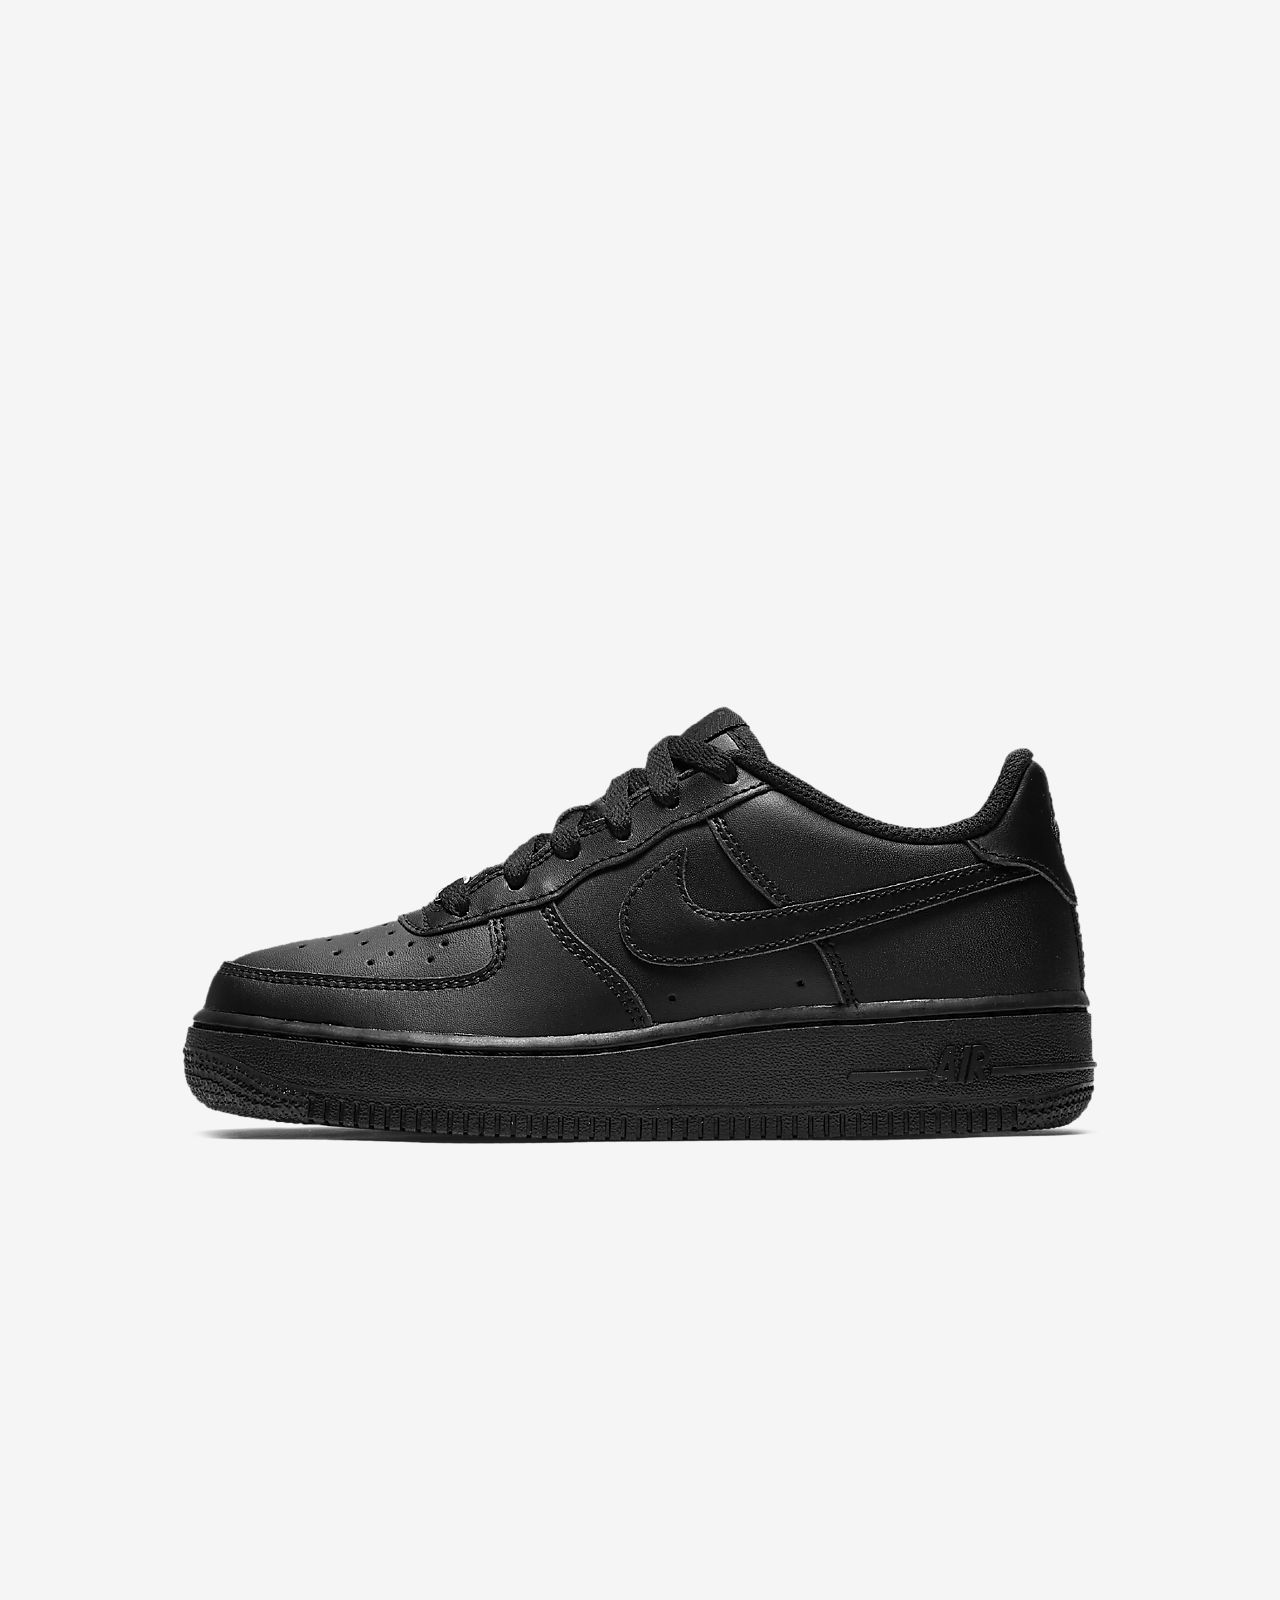 the latest dc054 d53da ... Sko Nike Air Force 1 för ungdom